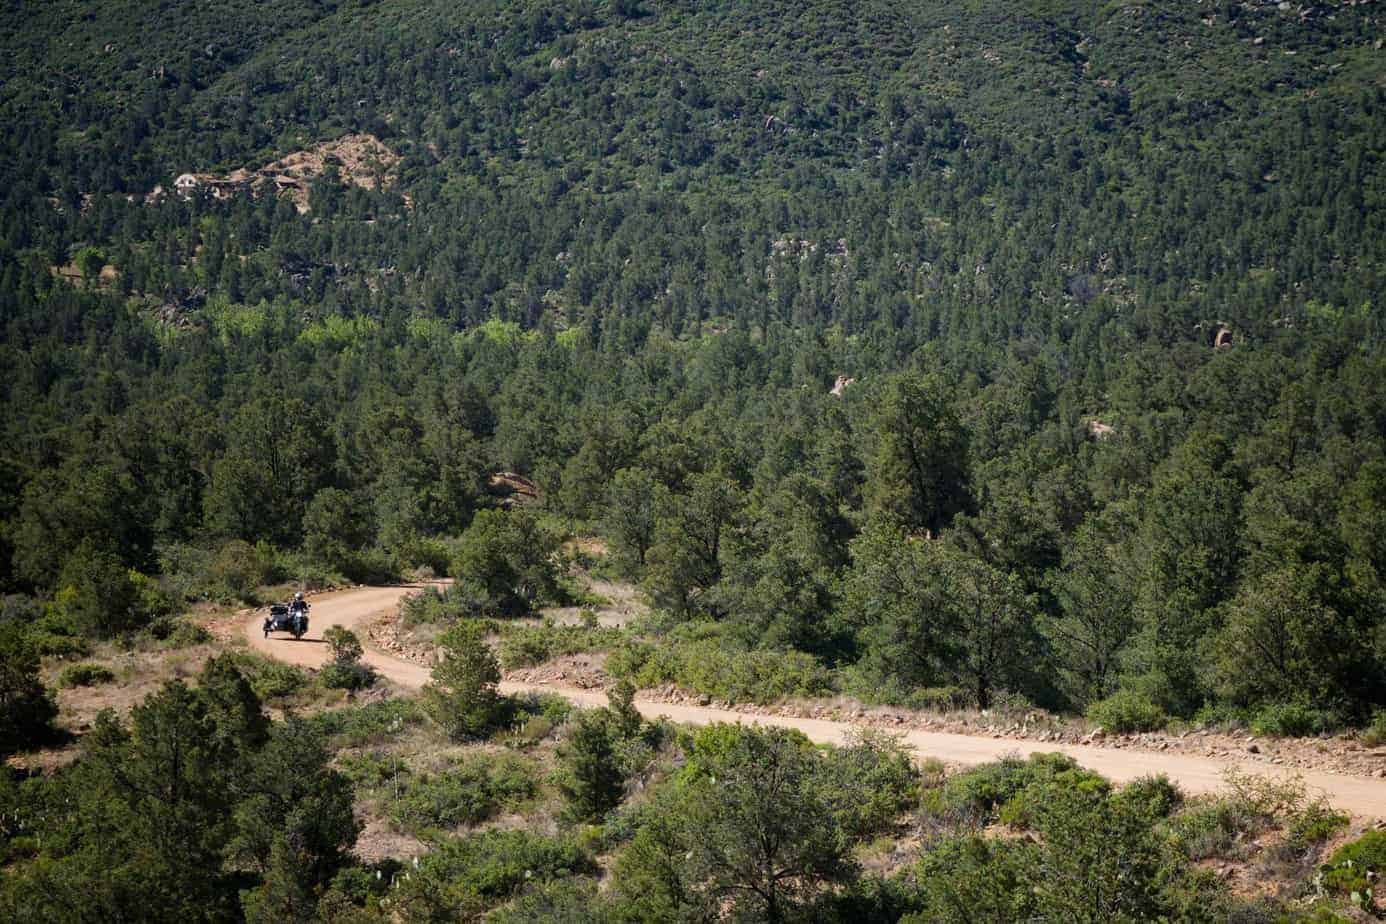 36 Hours of Adventure: Pines, Saguaros, and a Russian Motorcycle